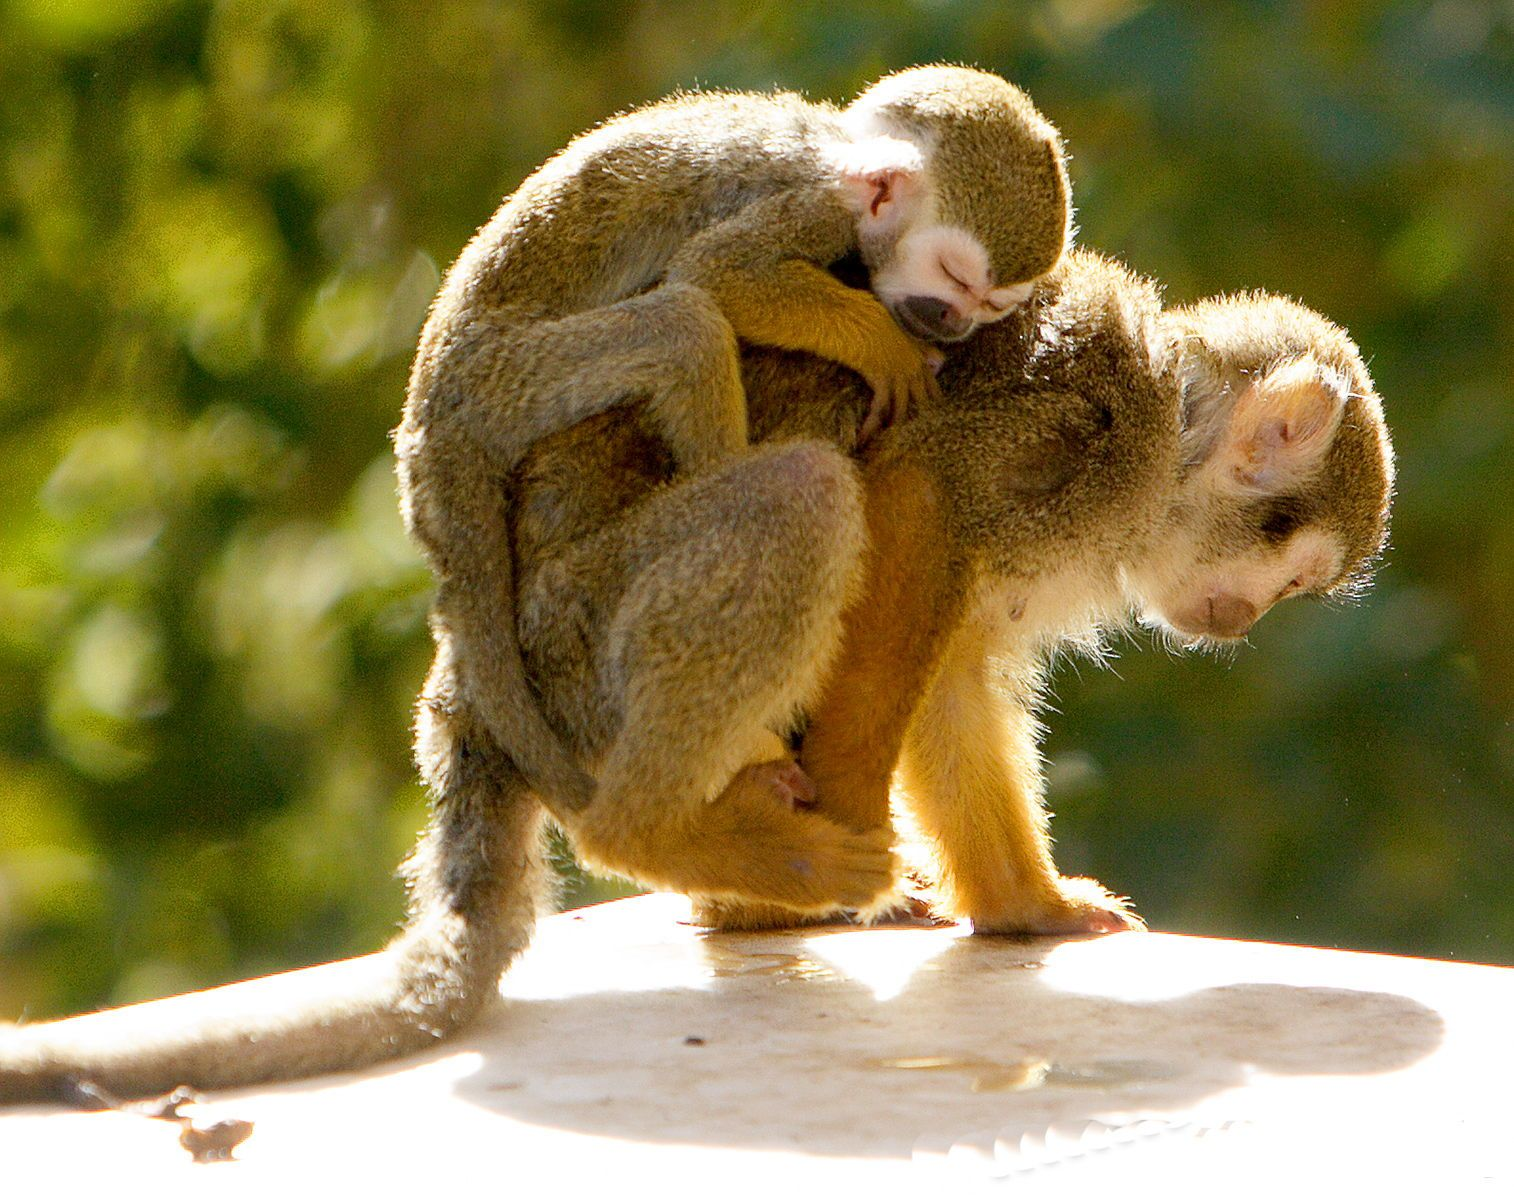 Monkey wallpapers free download best wild animals hd - Best animal wallpaper download ...